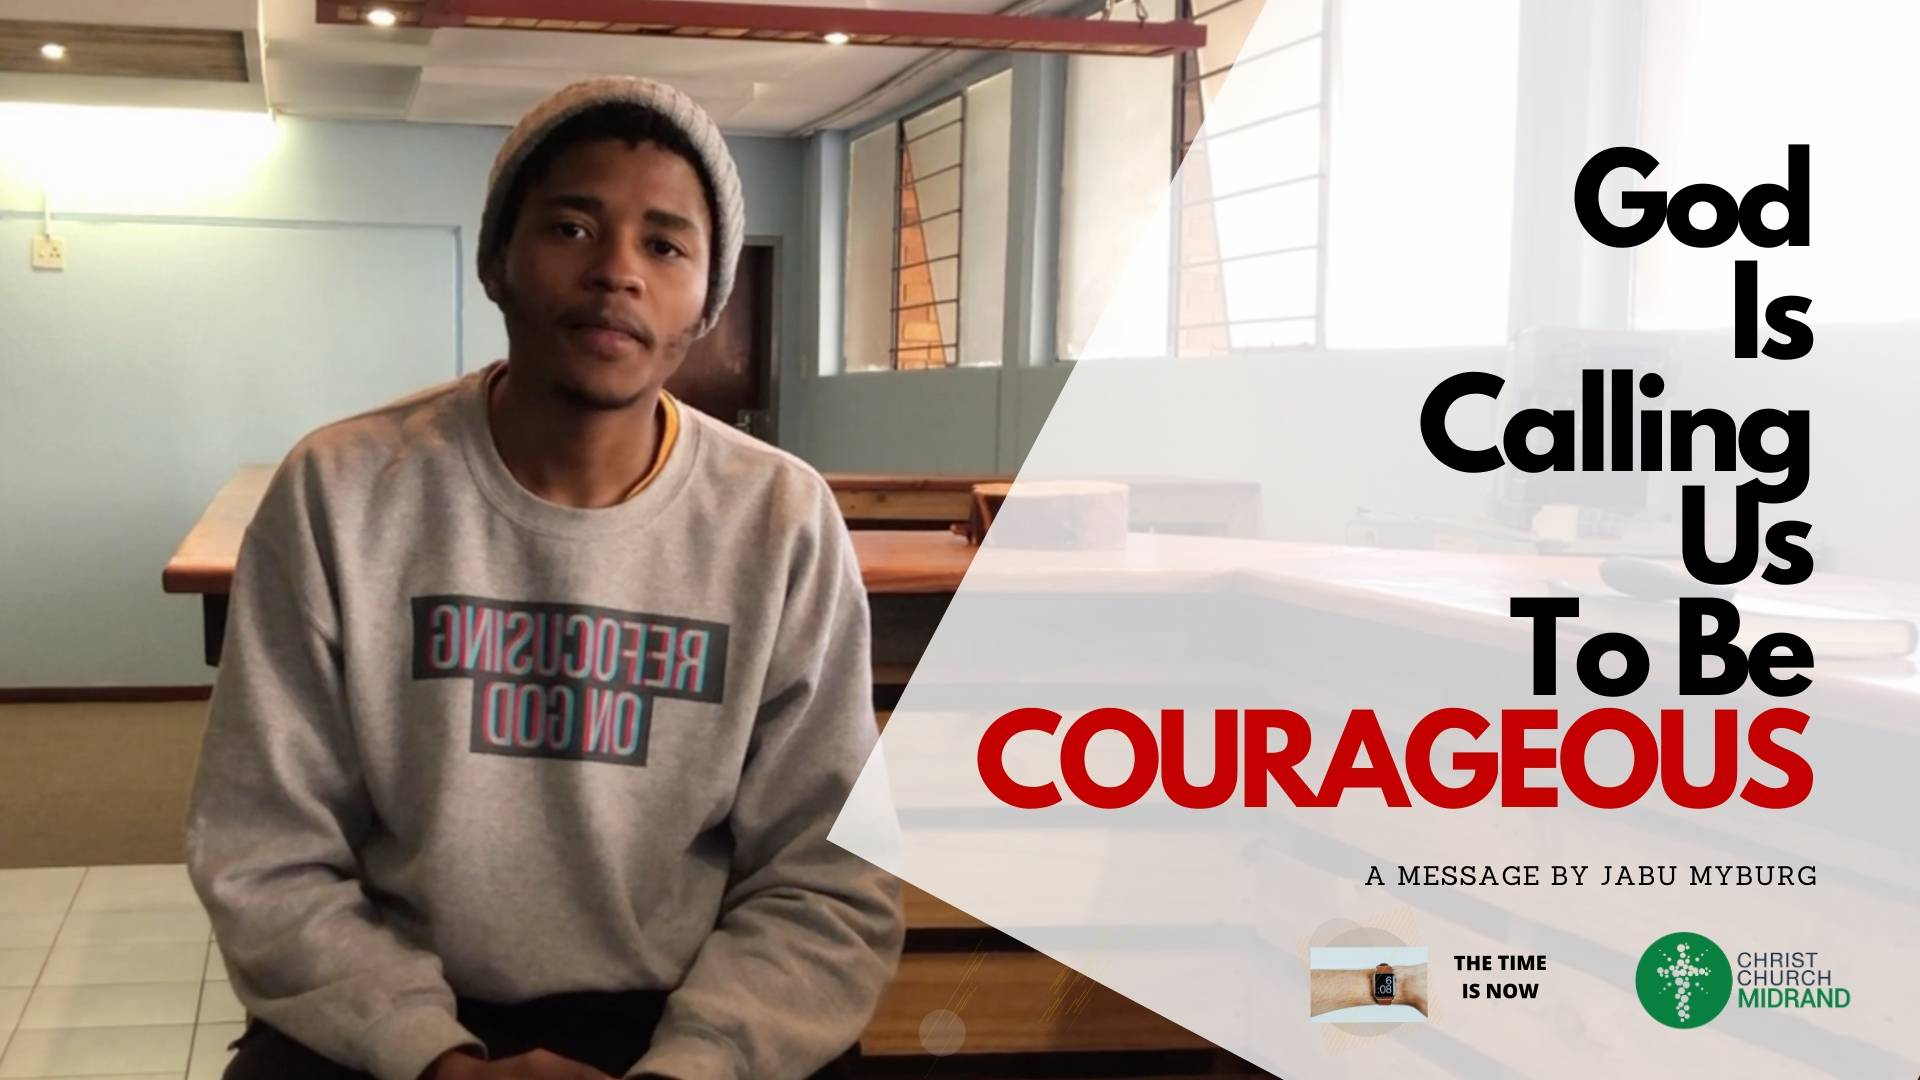 God is Calling Us to Be Courageous WEBSITE